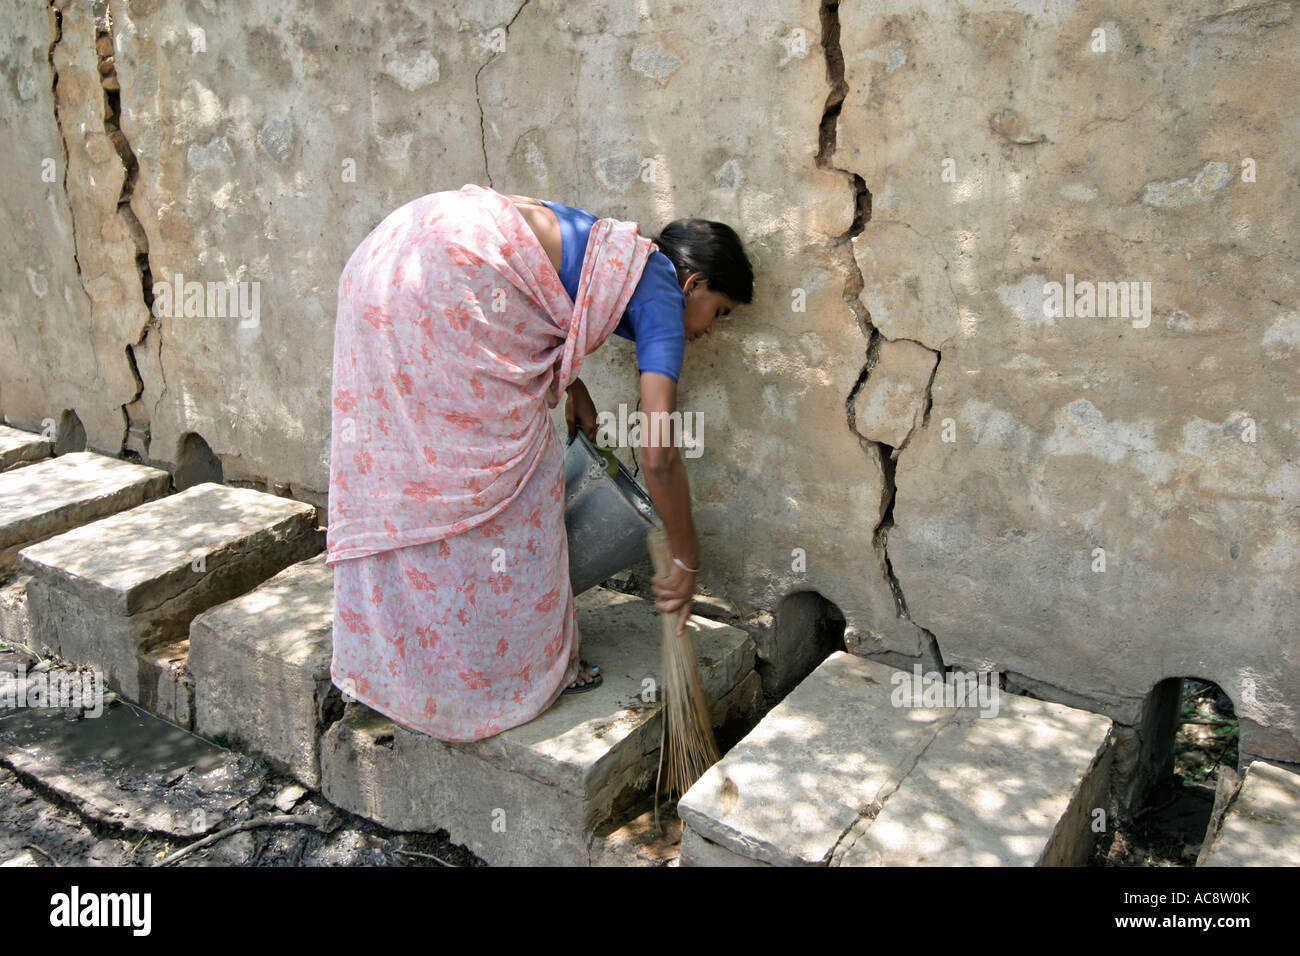 A dalit, or 'untouchable' woman, cleaning public lavatories in her town in Andhra Pradesh, India. Stock Photo